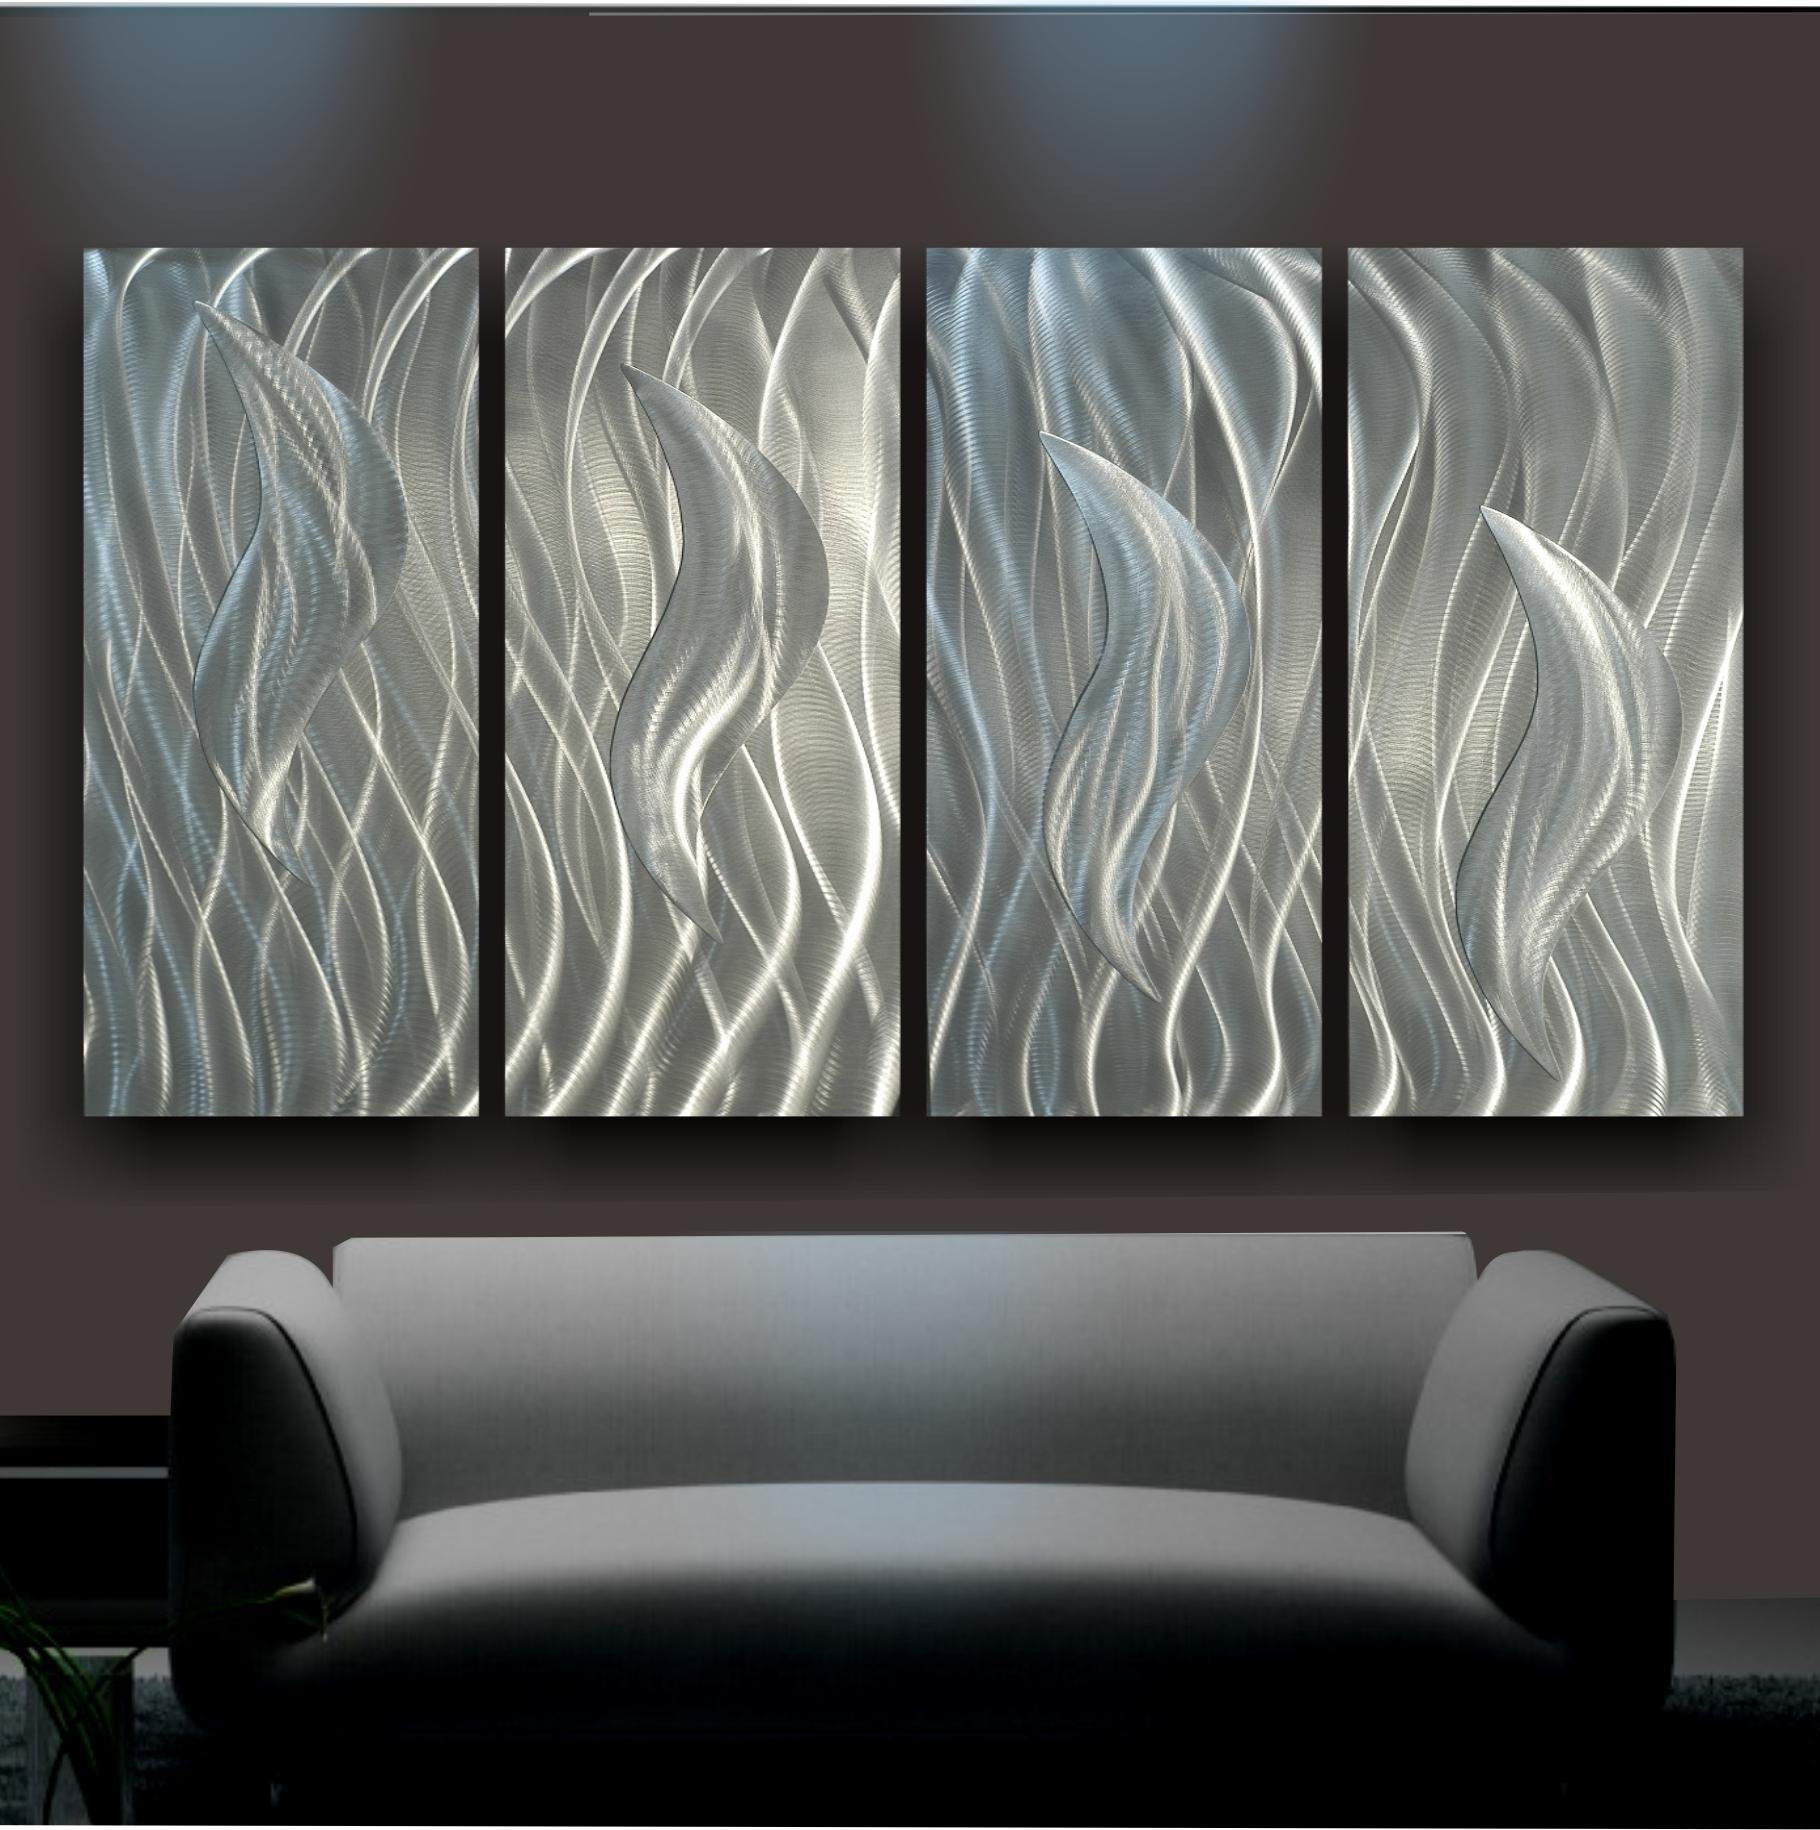 Metal Wall Designs Cheap Metal Wall Designs | Home Design Ideas For Inexpensive Metal Wall Art (View 7 of 20)